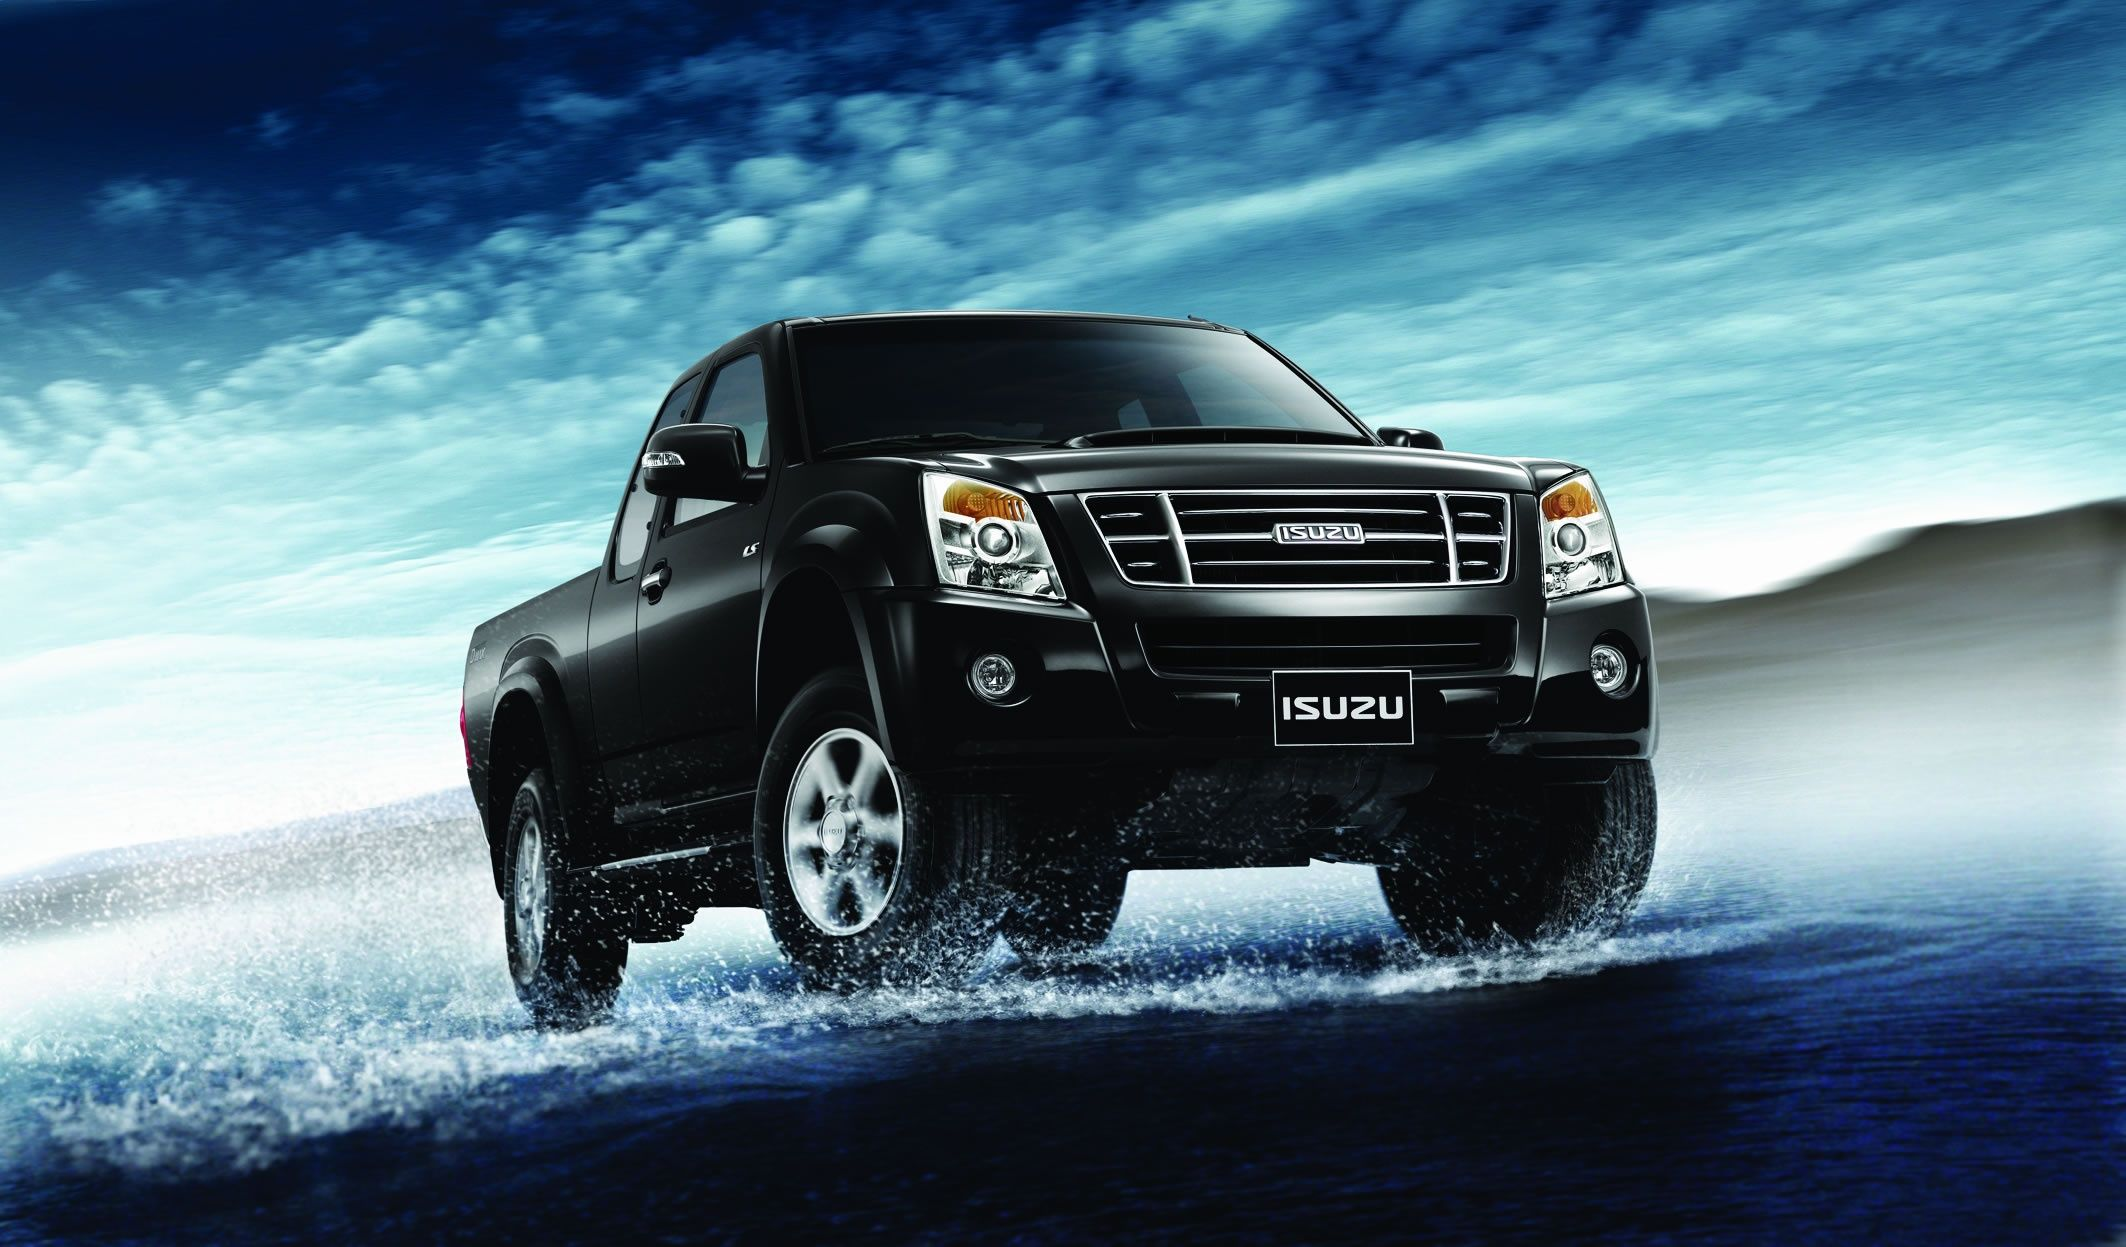 2007 Isuzu MD-Max KB P190 OEM Factory Service Repair Manual PDF. This is  the most COMPLETE official workshop repair manual.This manual contains  repair ...